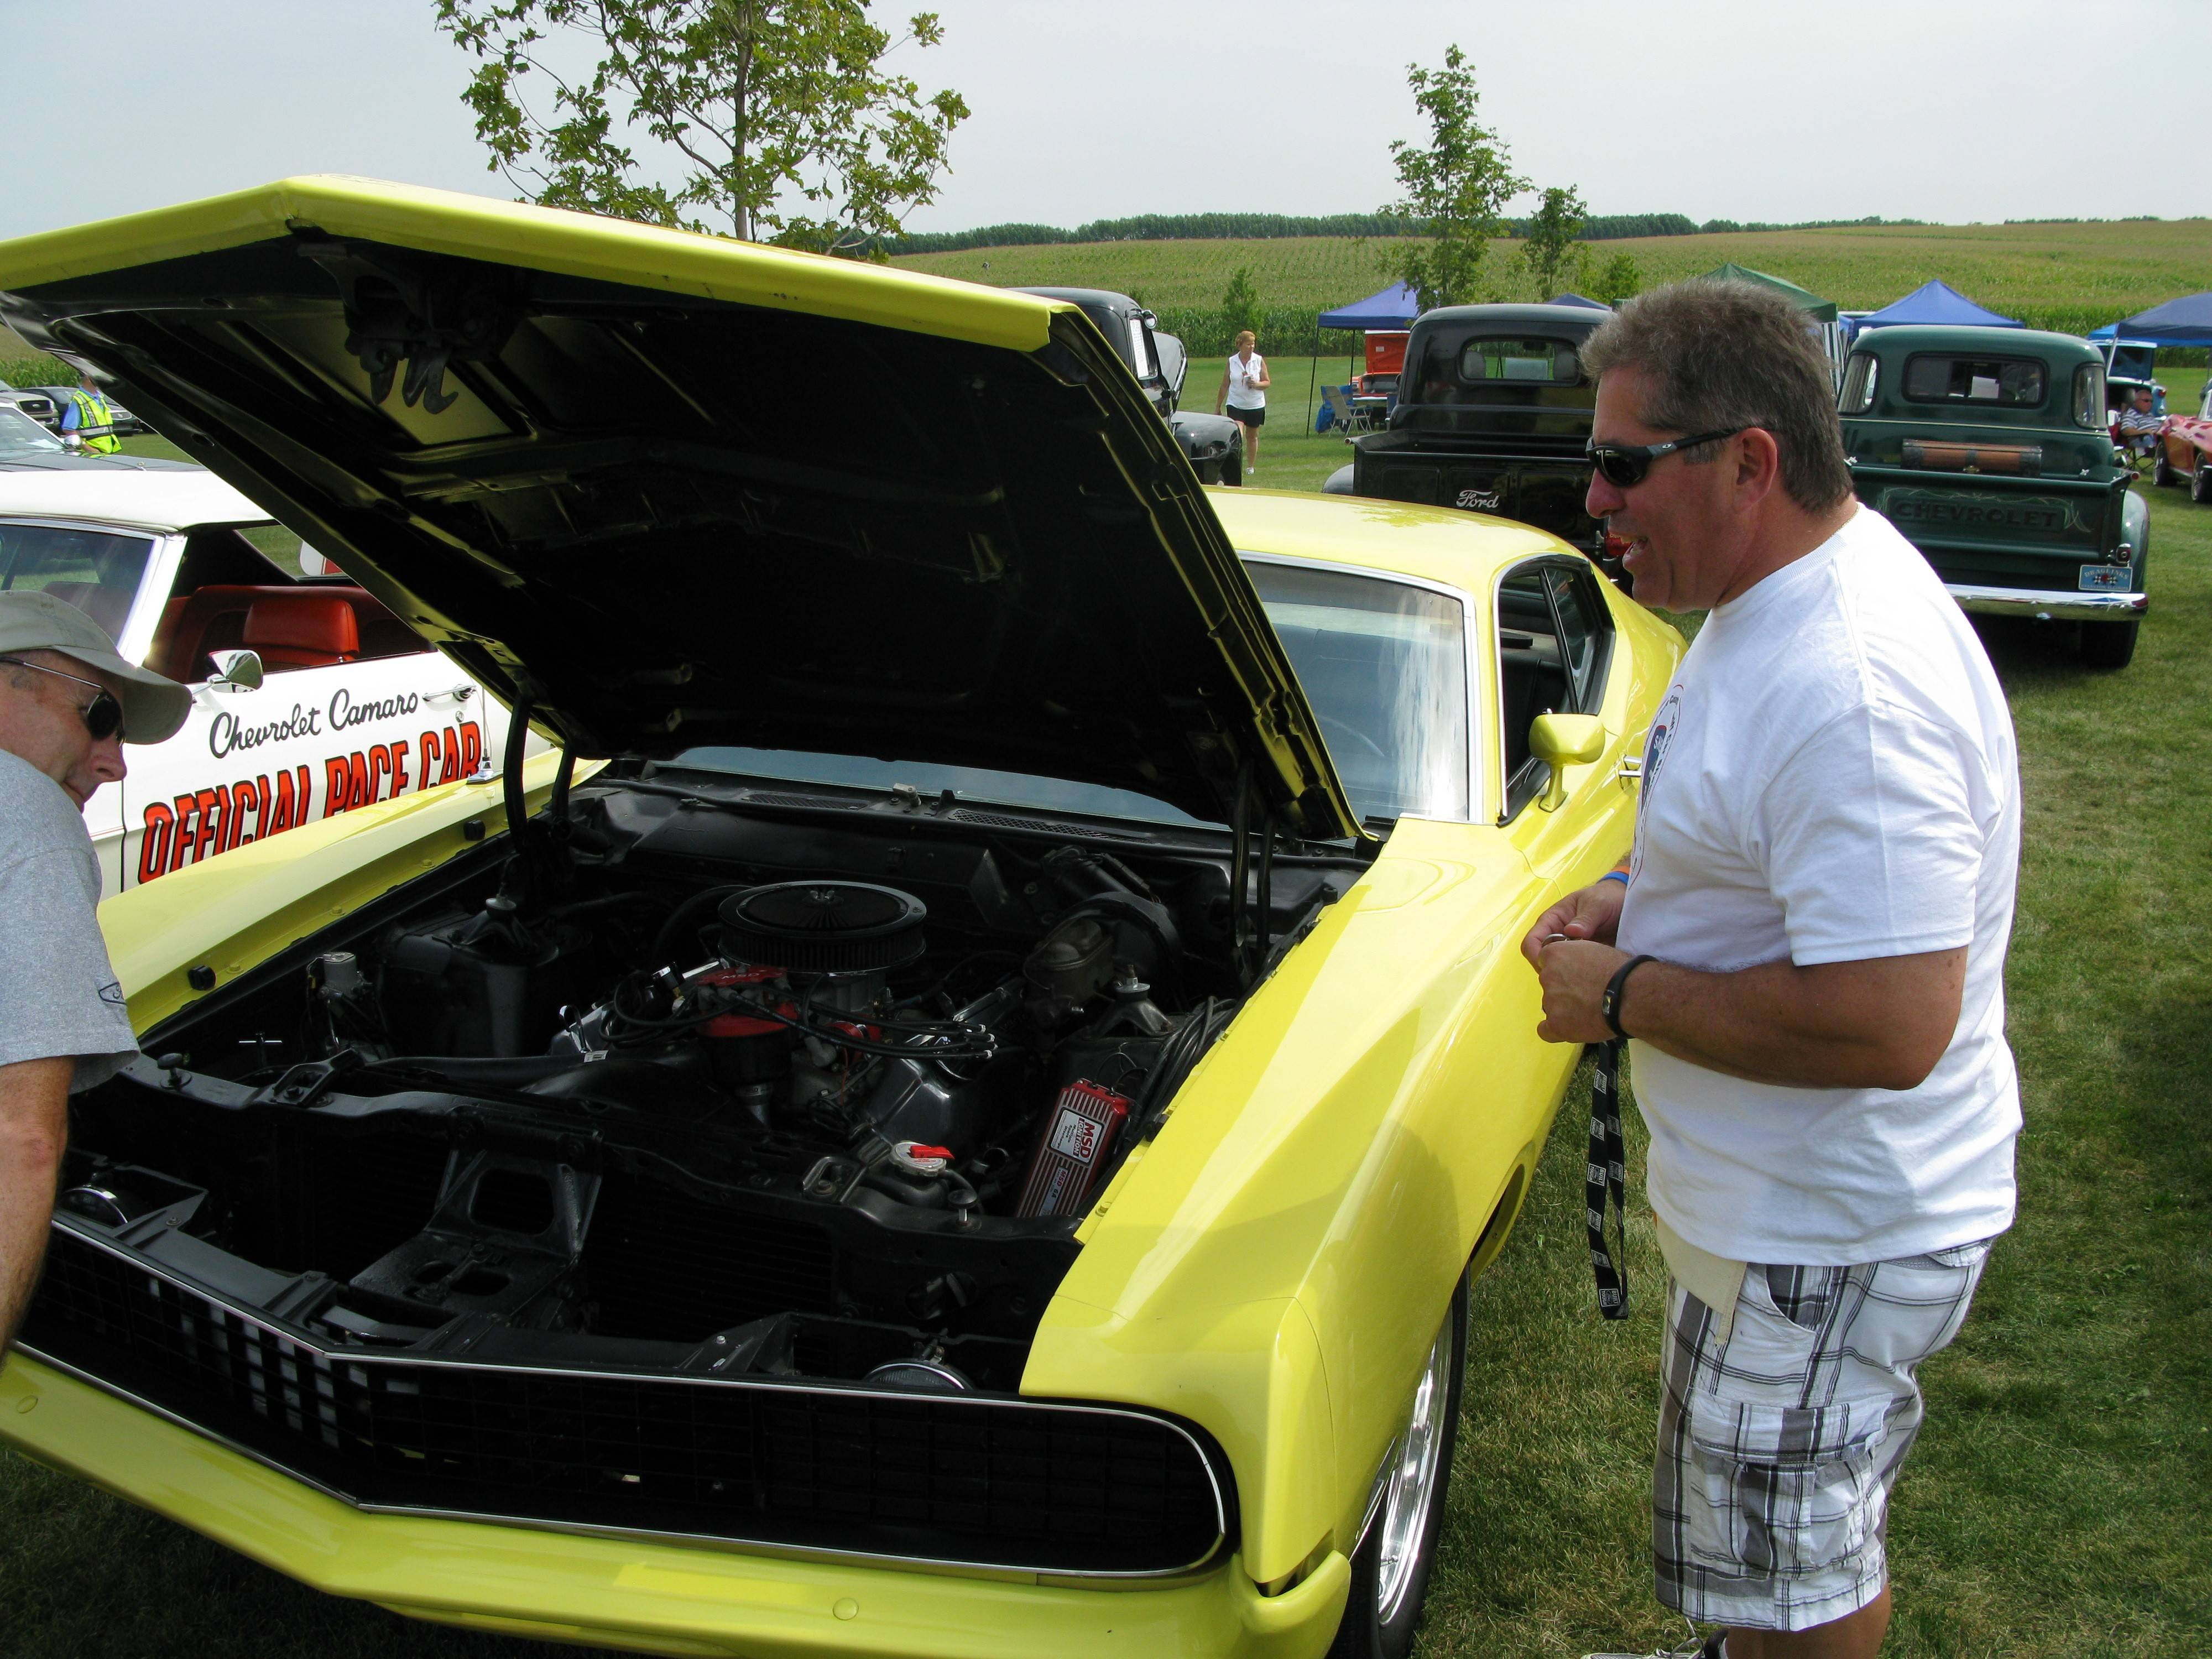 Kane sheriff wants final charity car show to finish strong